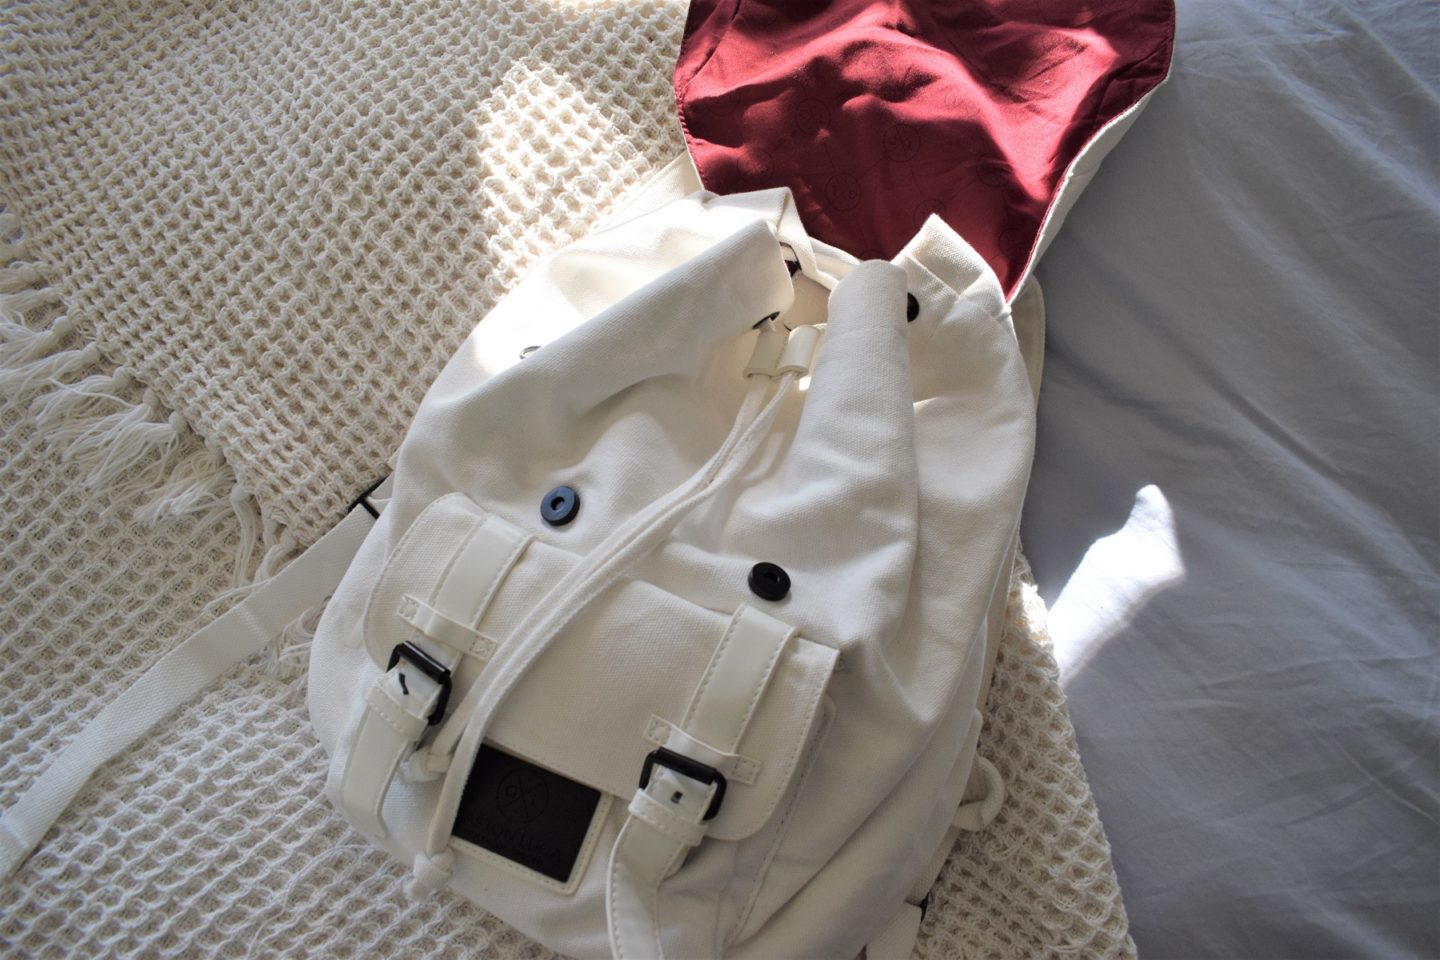 Gaston Luga Clässic Bag, collaboration, outfit of the day